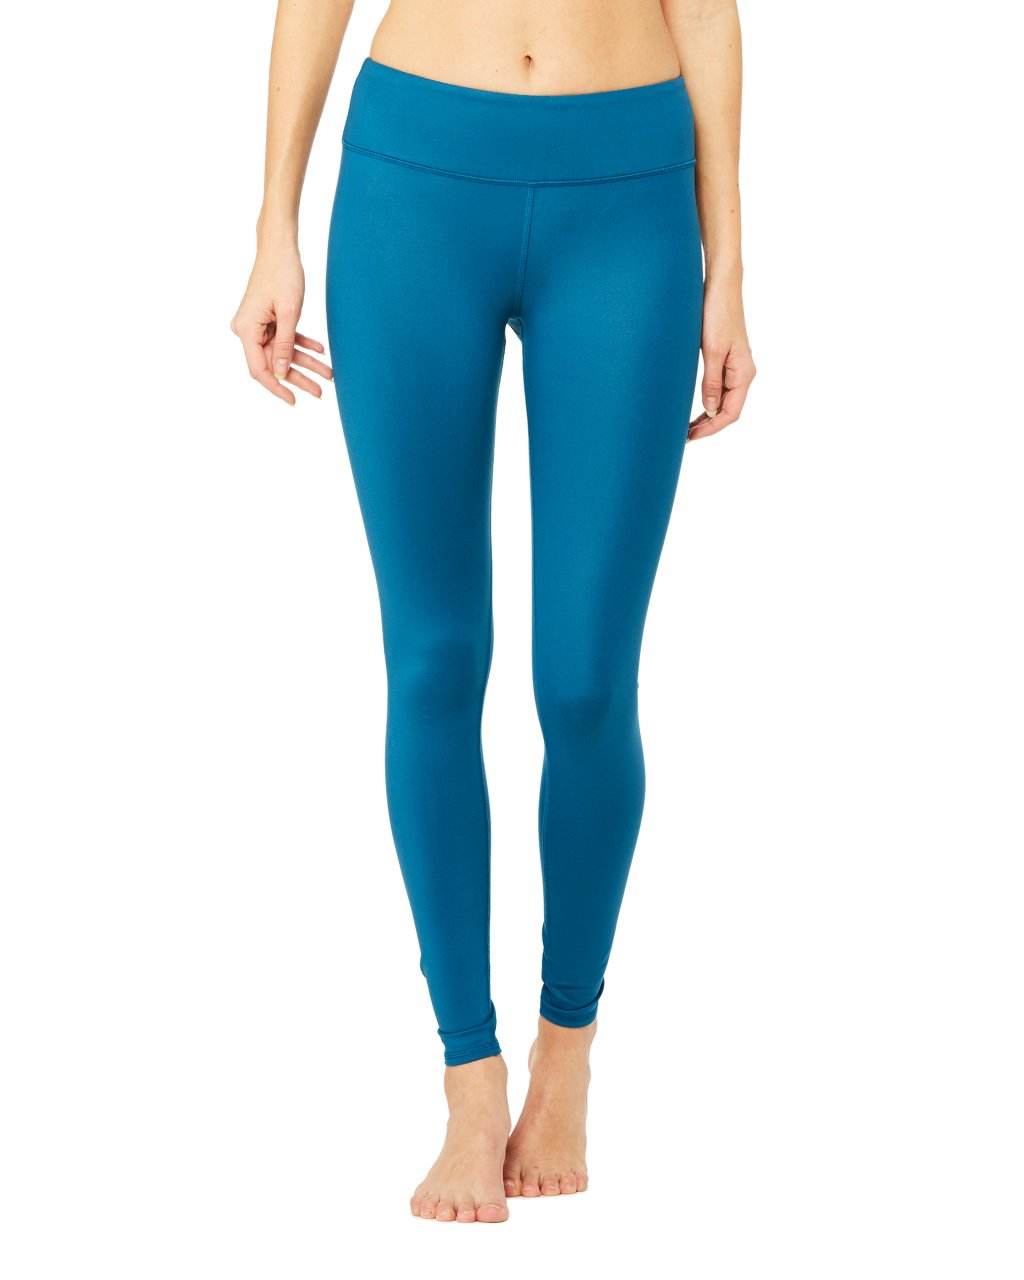 Alo Yoga Airbrush Legging - Legion Blue Glossy